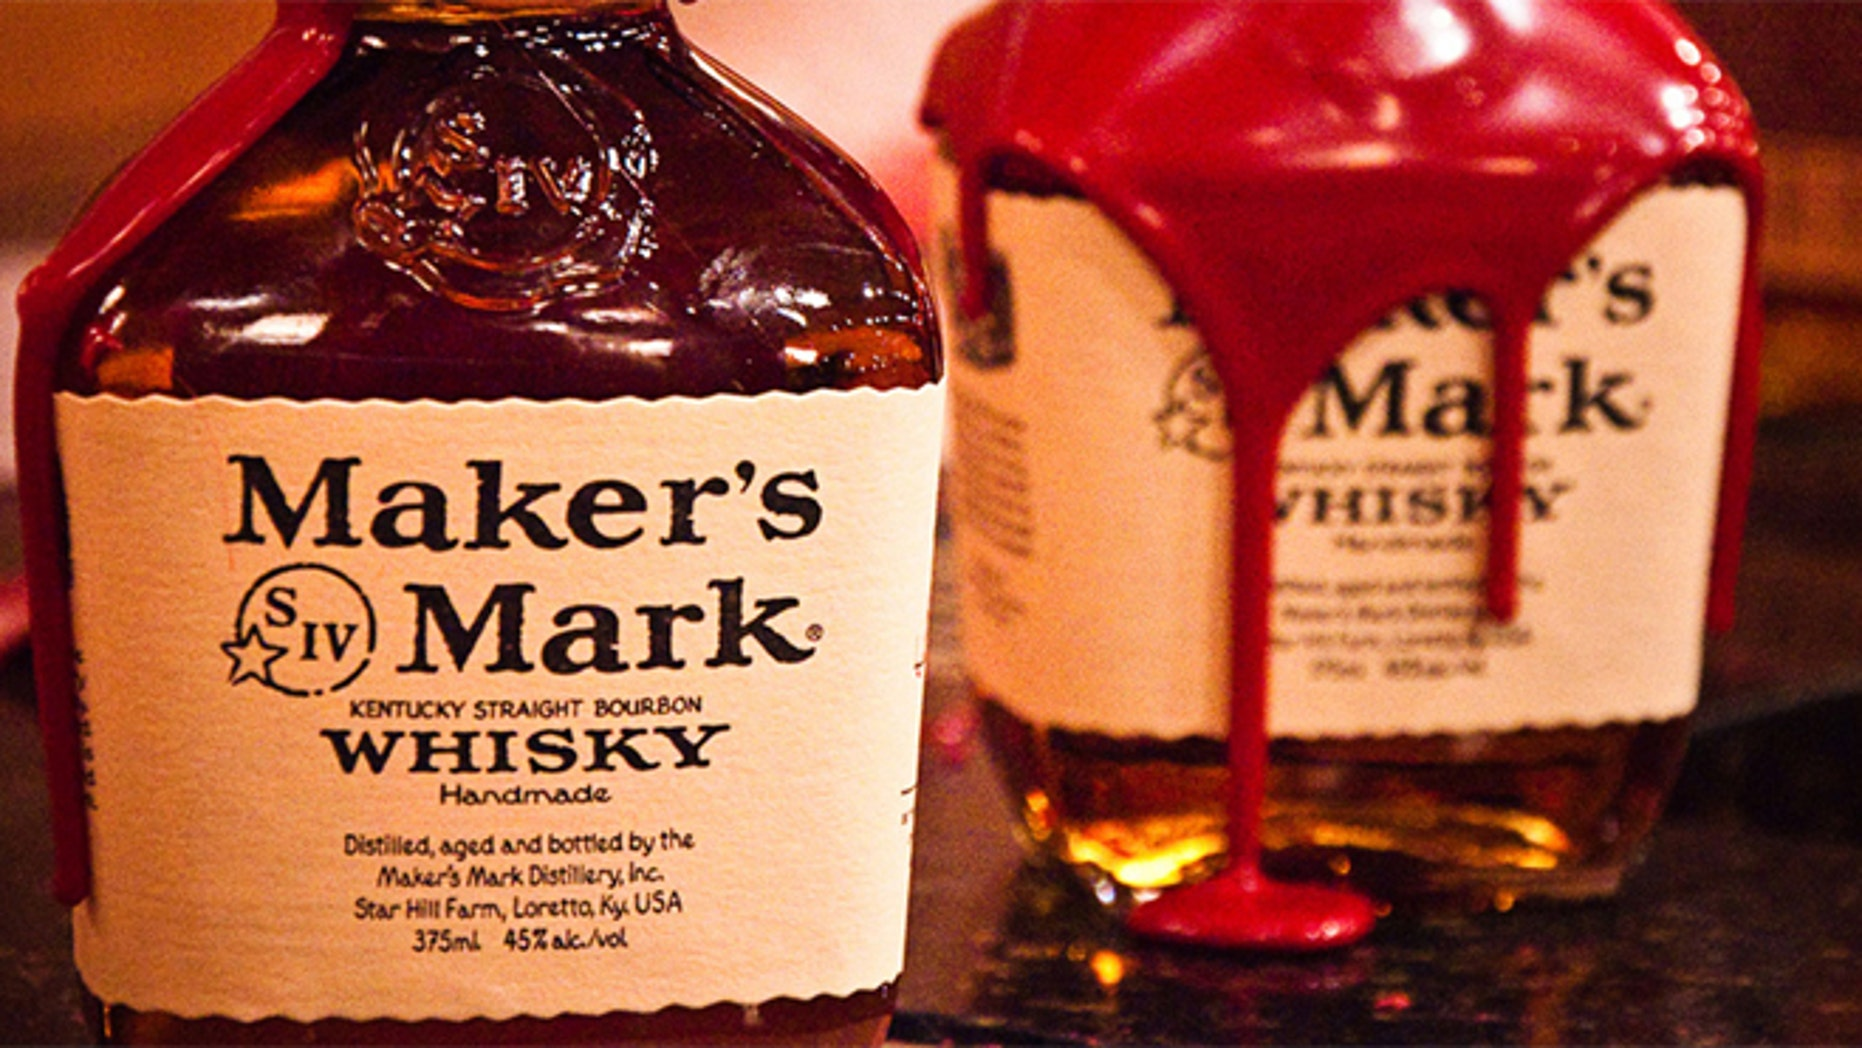 The producers of Maker's Mark bourbon announced a distillery expansion  to pump up production and keep pace with growing demand for the Kentucky whiskey.